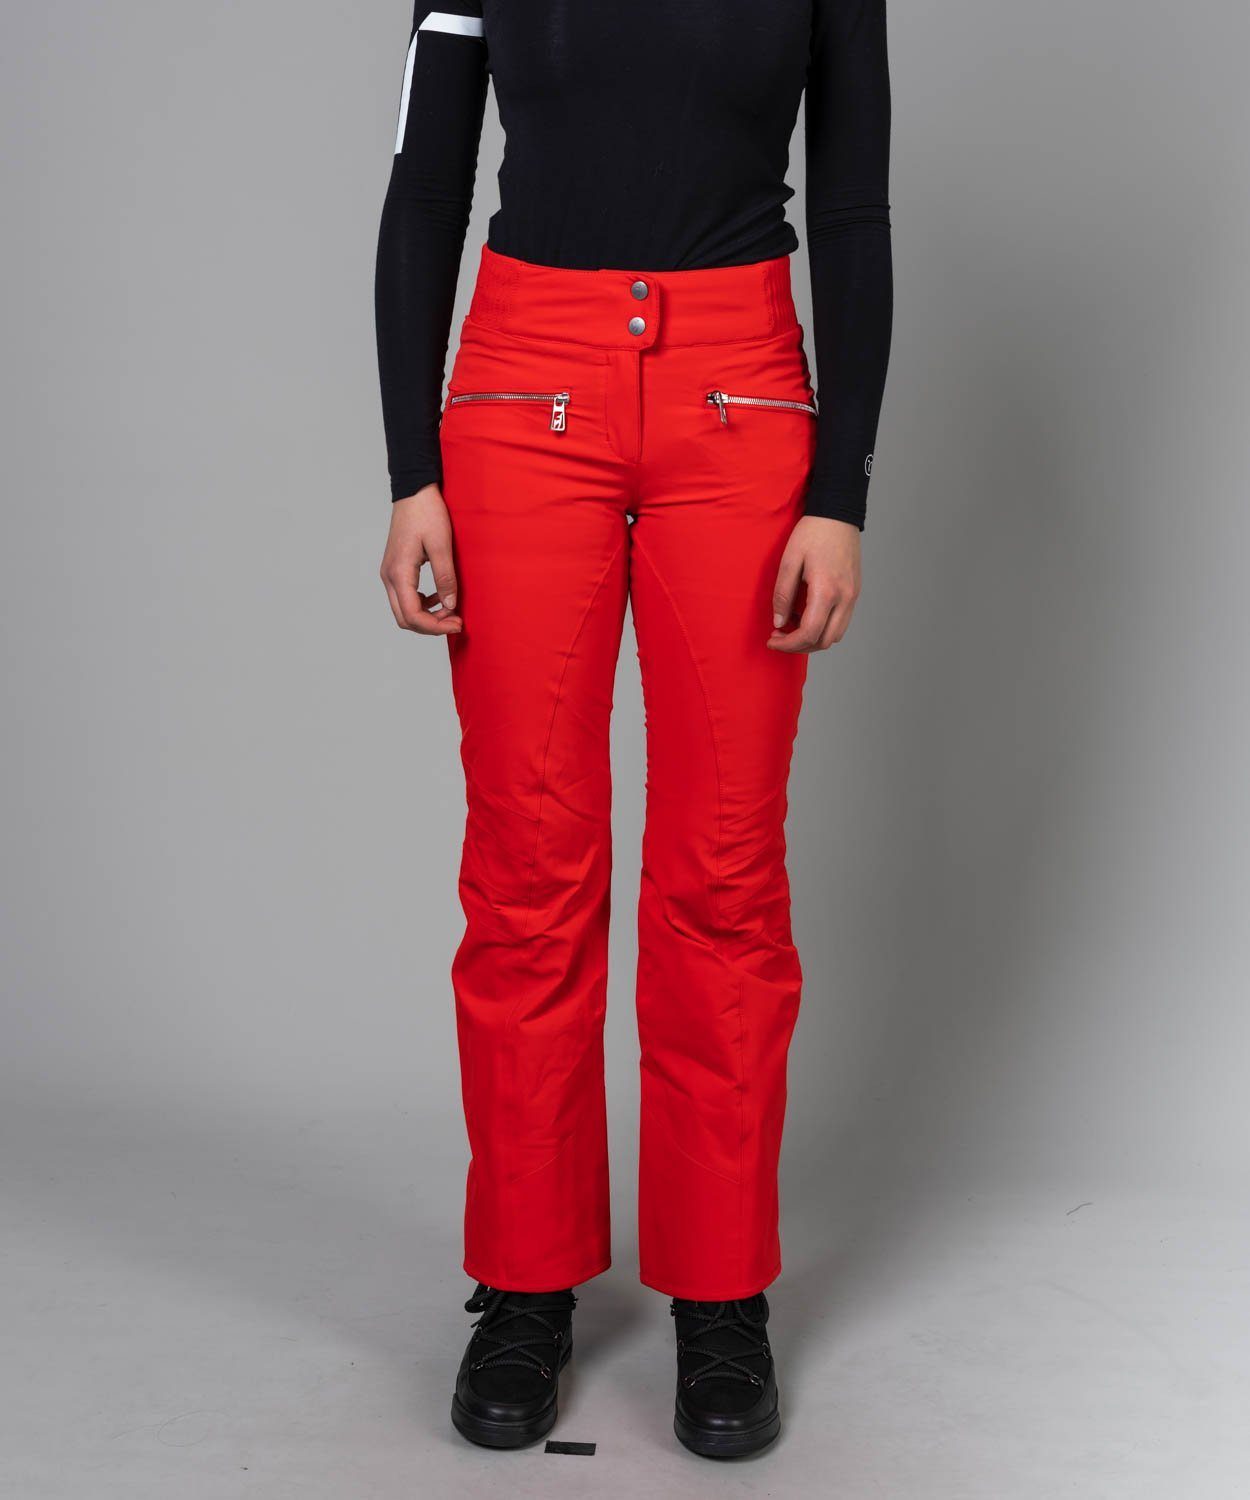 Women's Alla New Ski Pants Ski Pants Toni Sailer Flame Red S